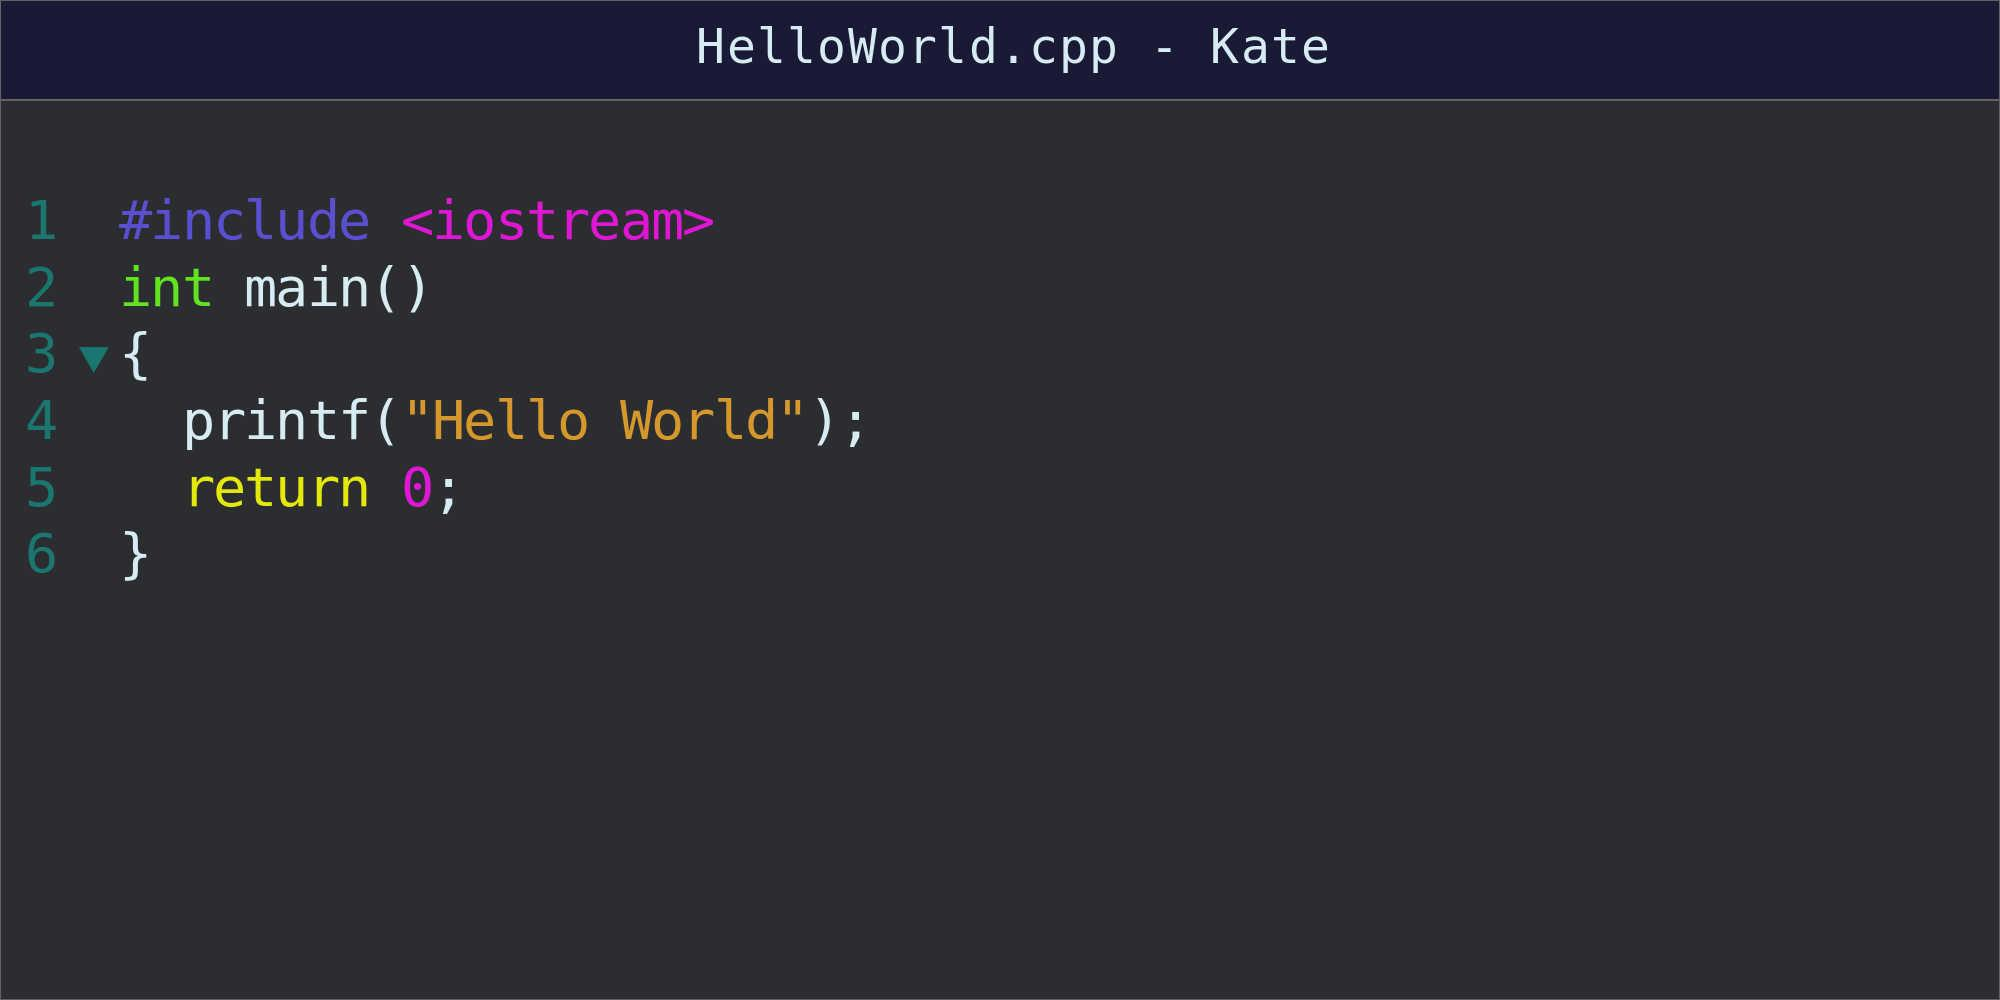 Code for hello World program shown in text file